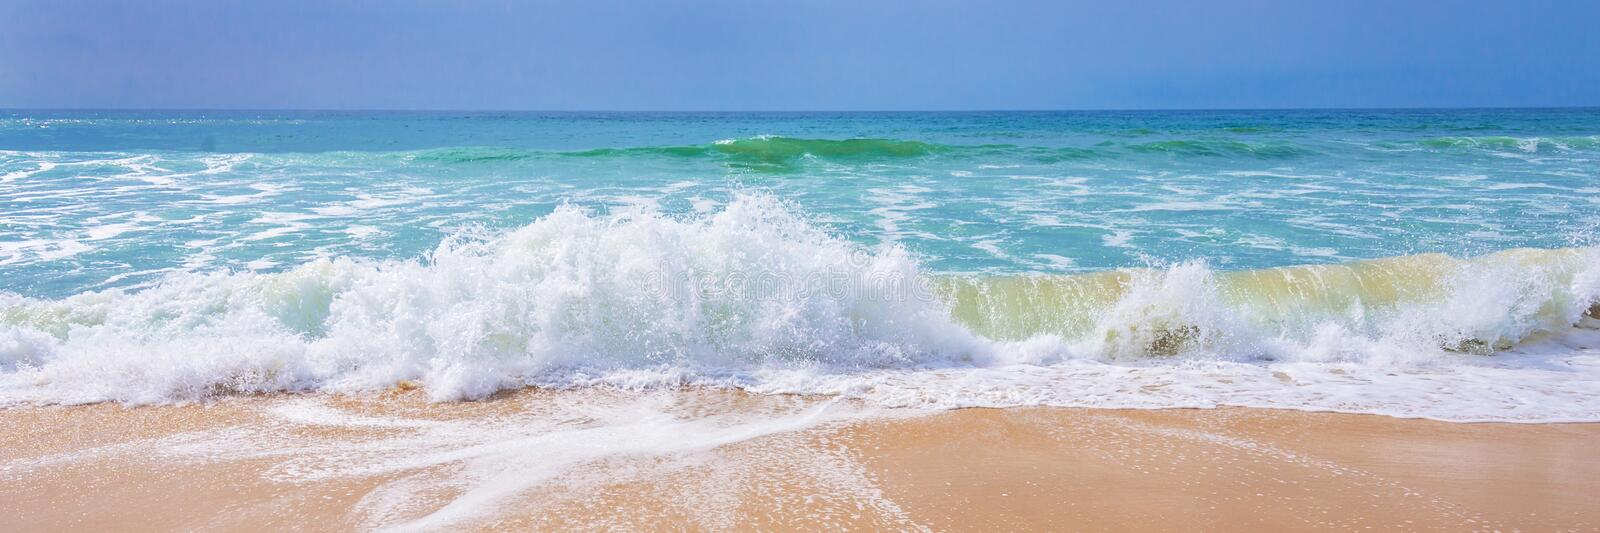 Atlantic ocean, view of waves on the beach royalty free stock photo